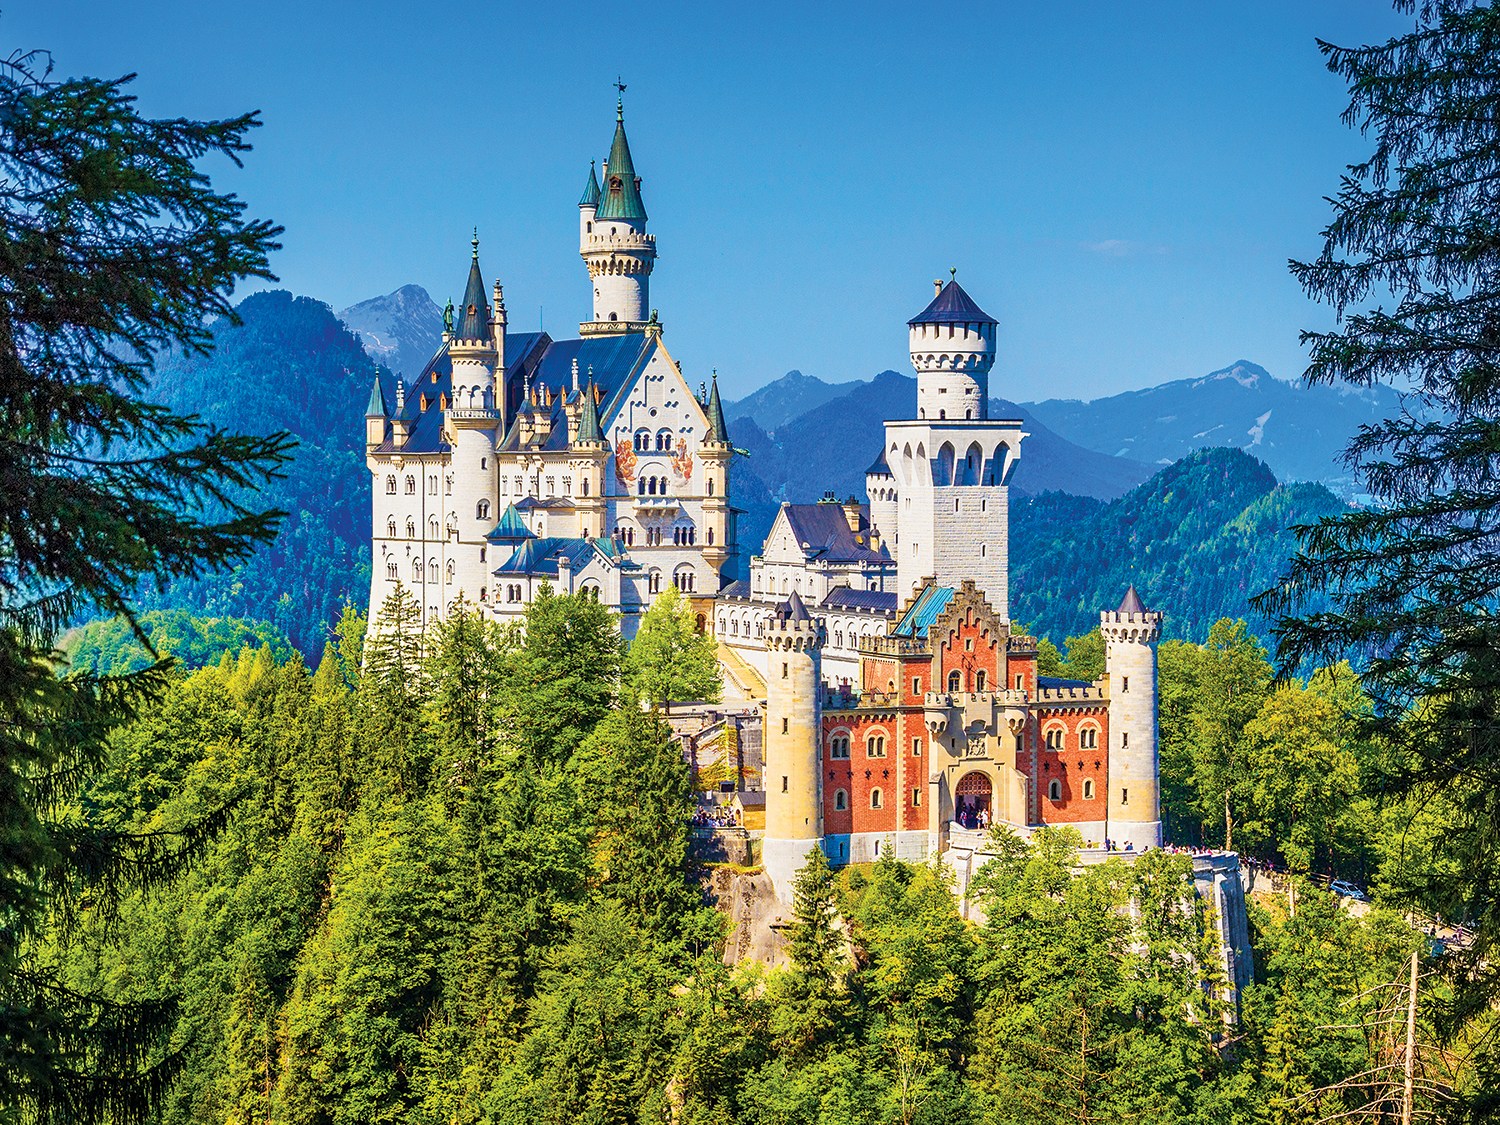 Neuschwanstein Castle, Bavaria - Scratch and Dent Dogs Jigsaw Puzzle